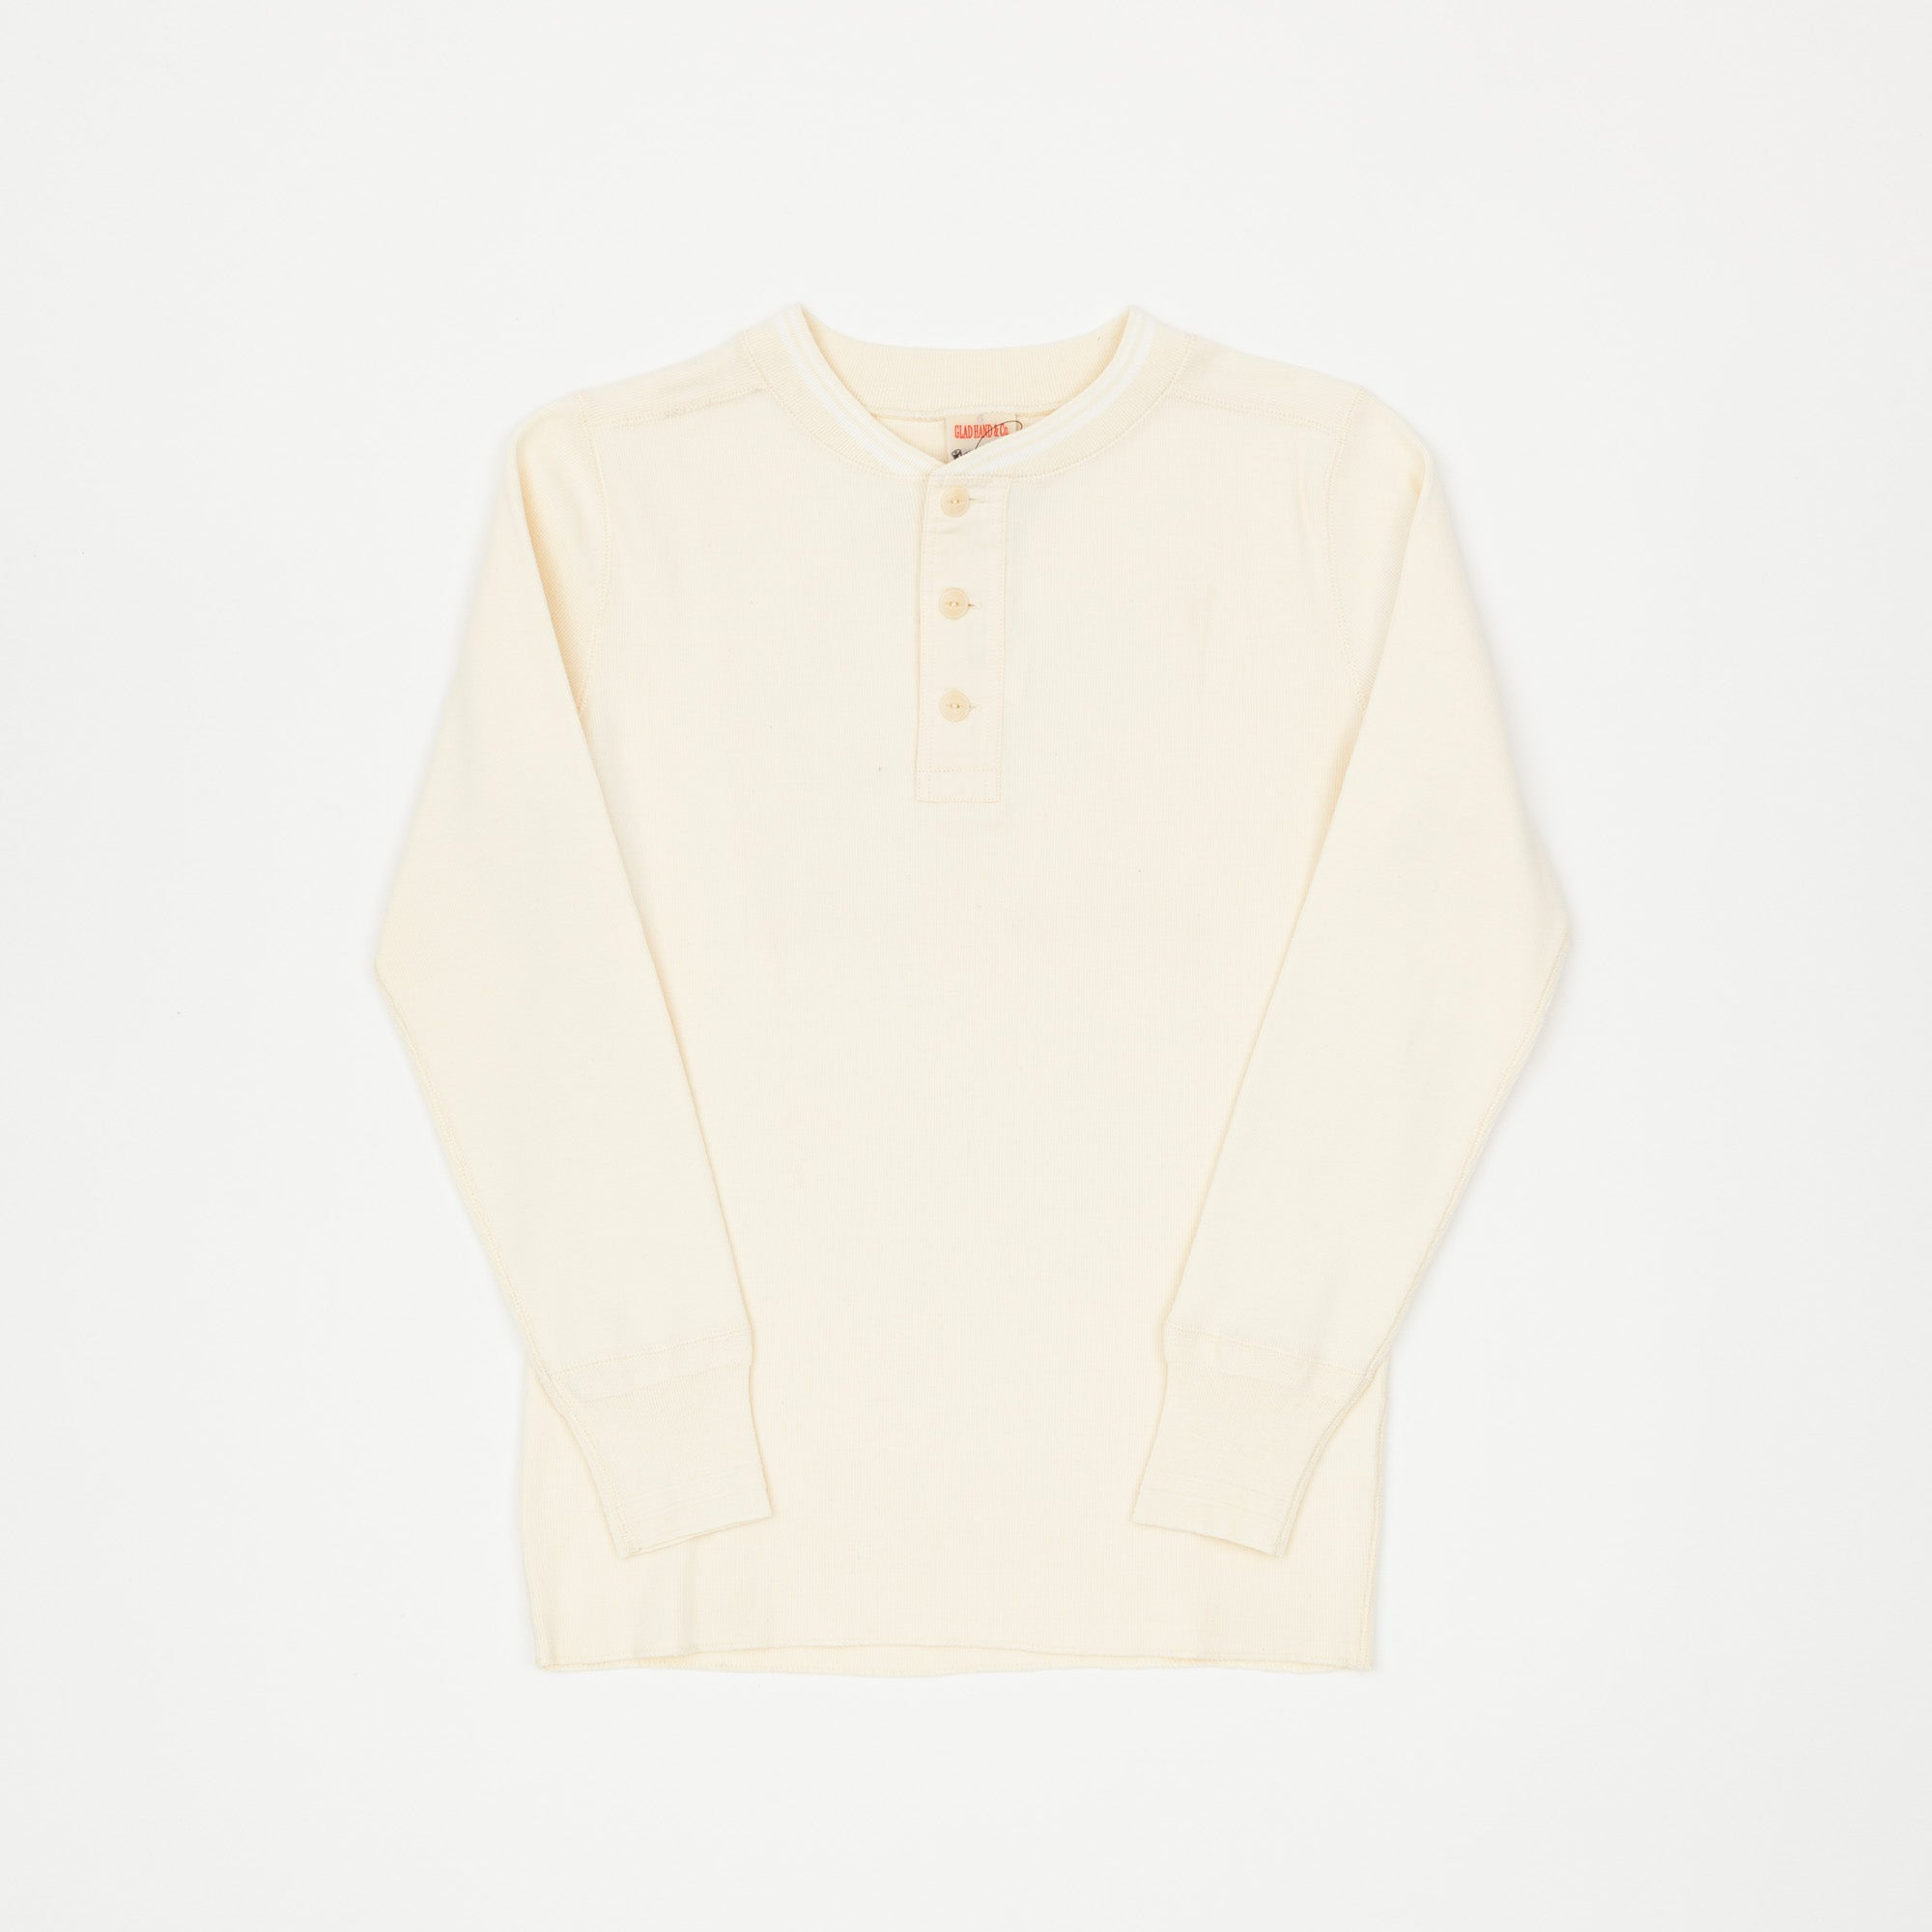 Glad Hand Co. Cotton Henley